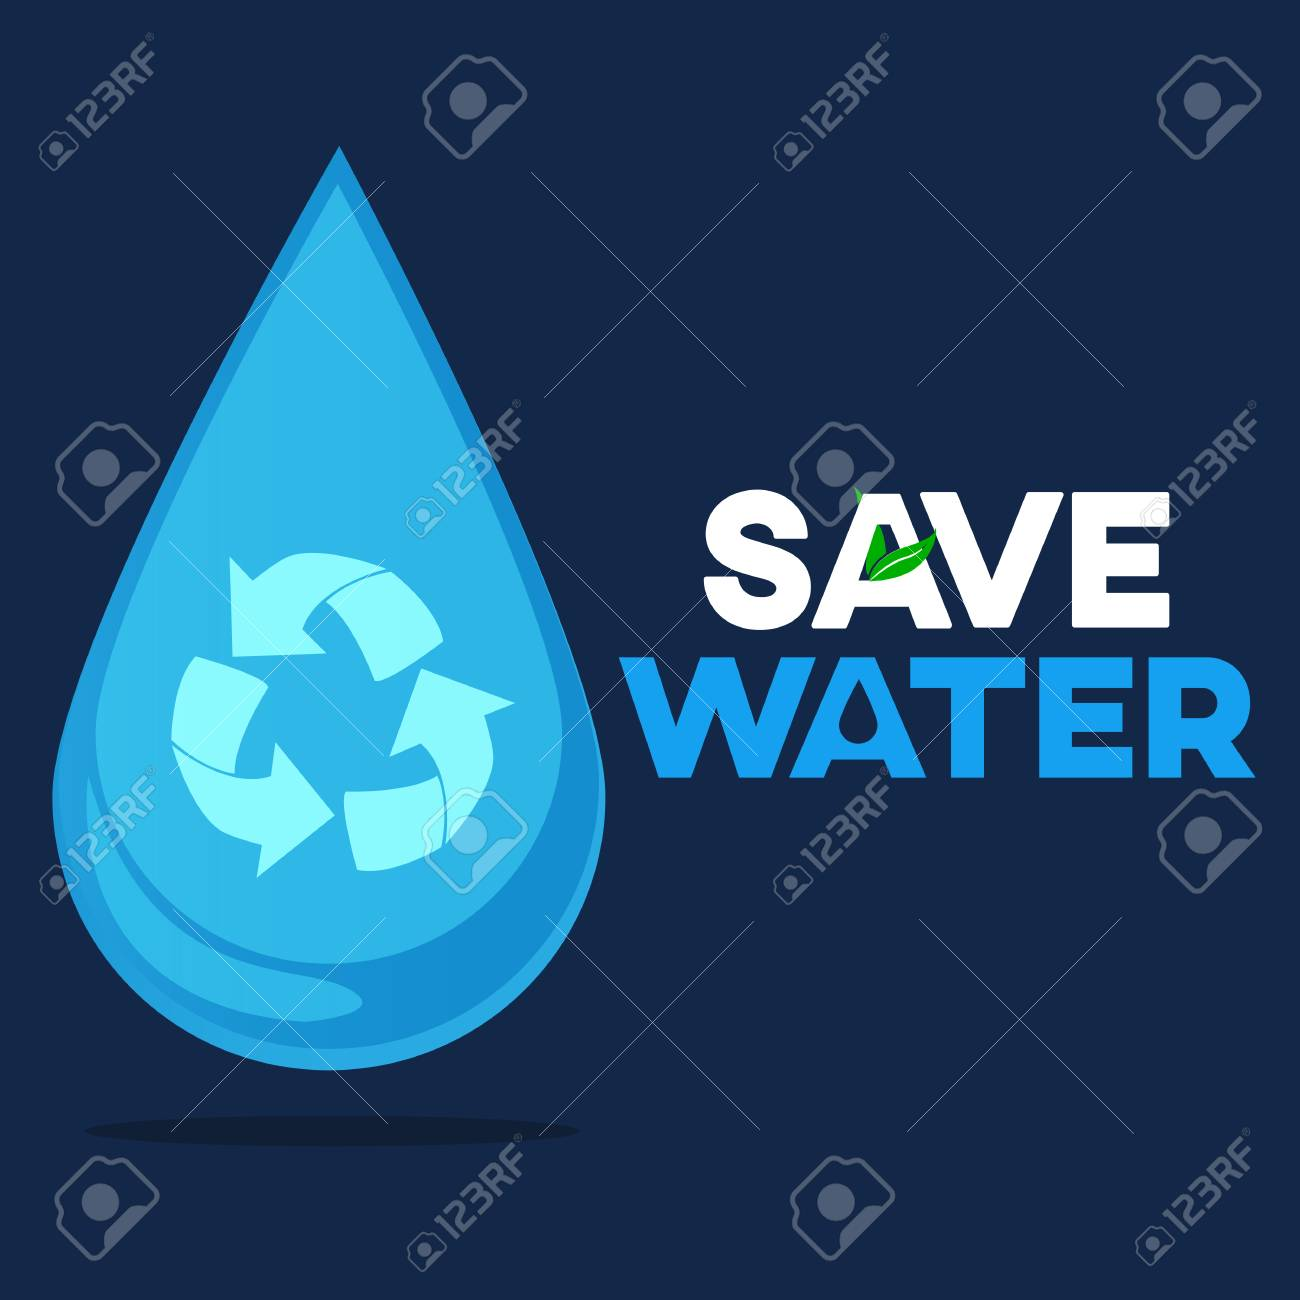 save water graphic design vector or background greeting card